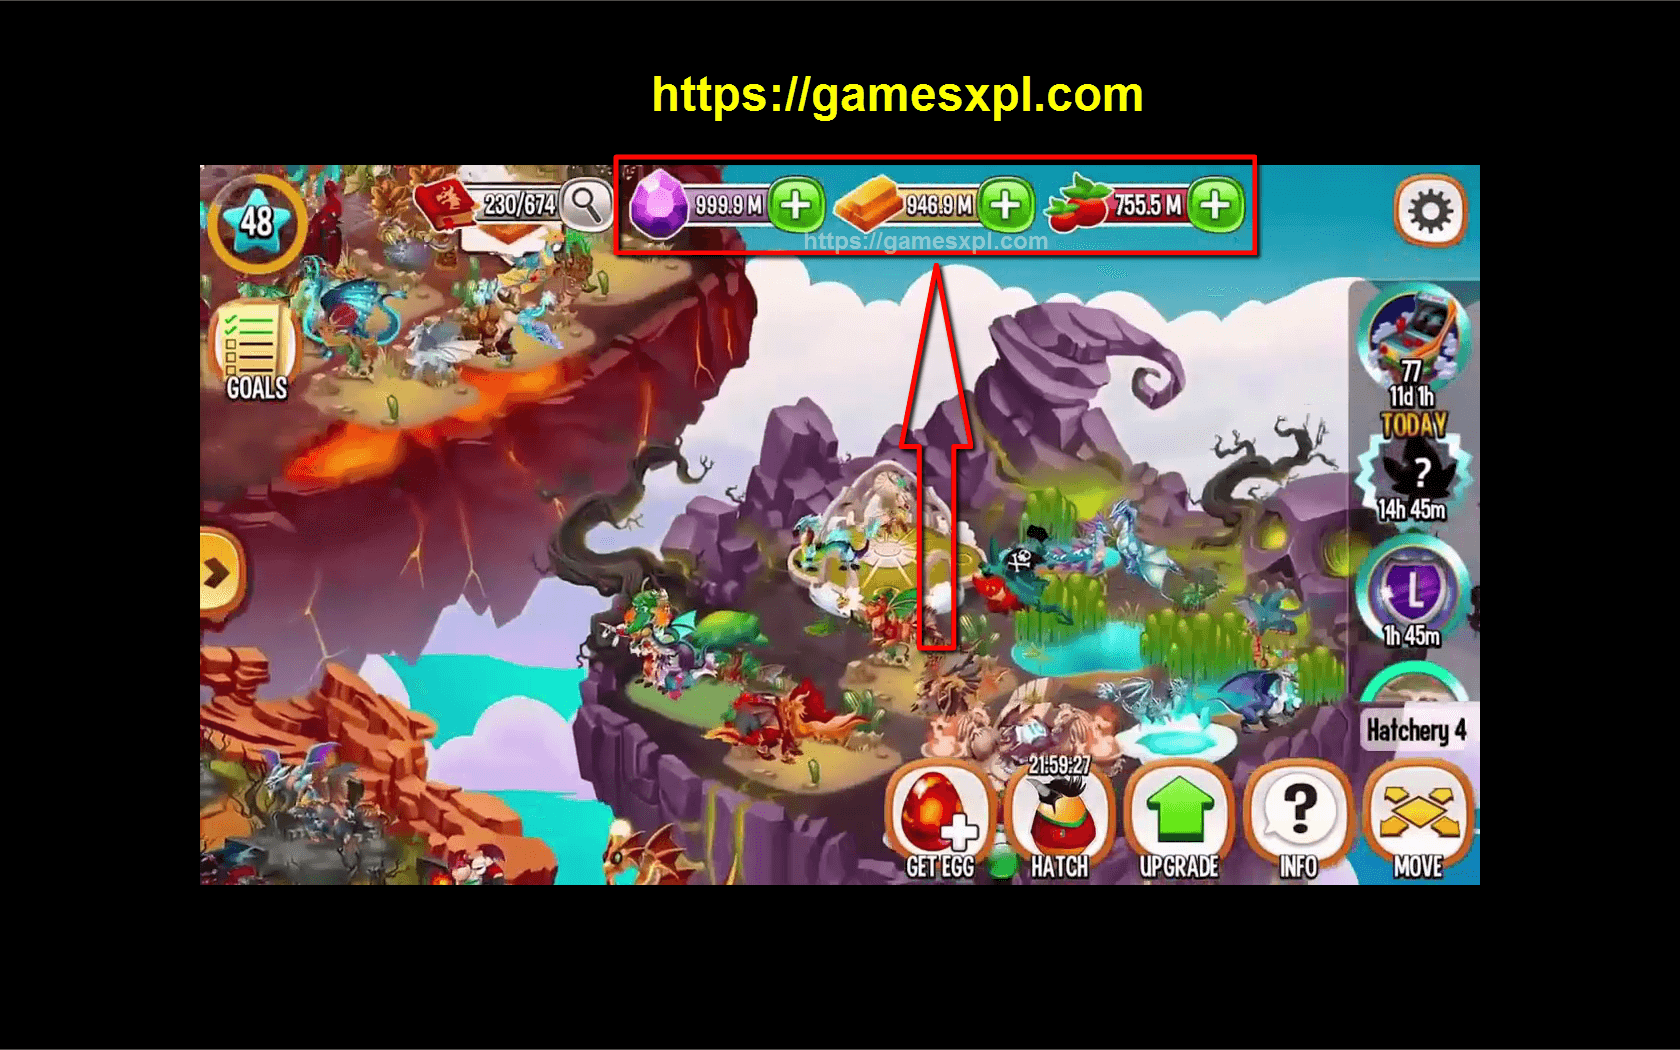 Dragon City Hack Mod Apk – How to Have Unlimited Gems, Gold